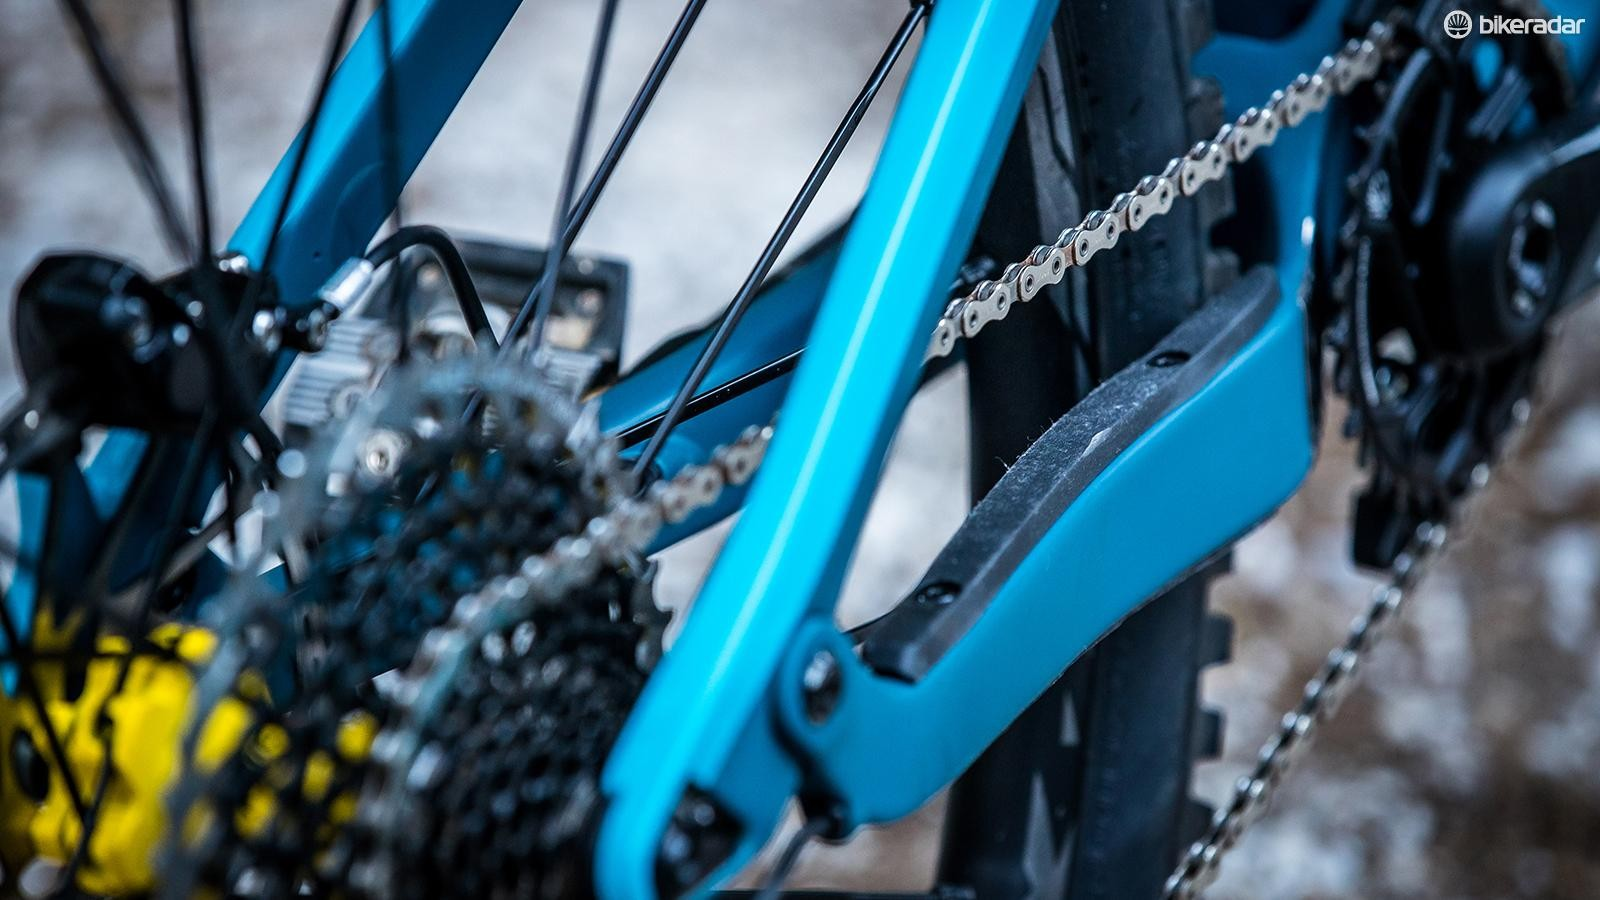 Chainstay protection on the new Strive helps keep the ride quiet